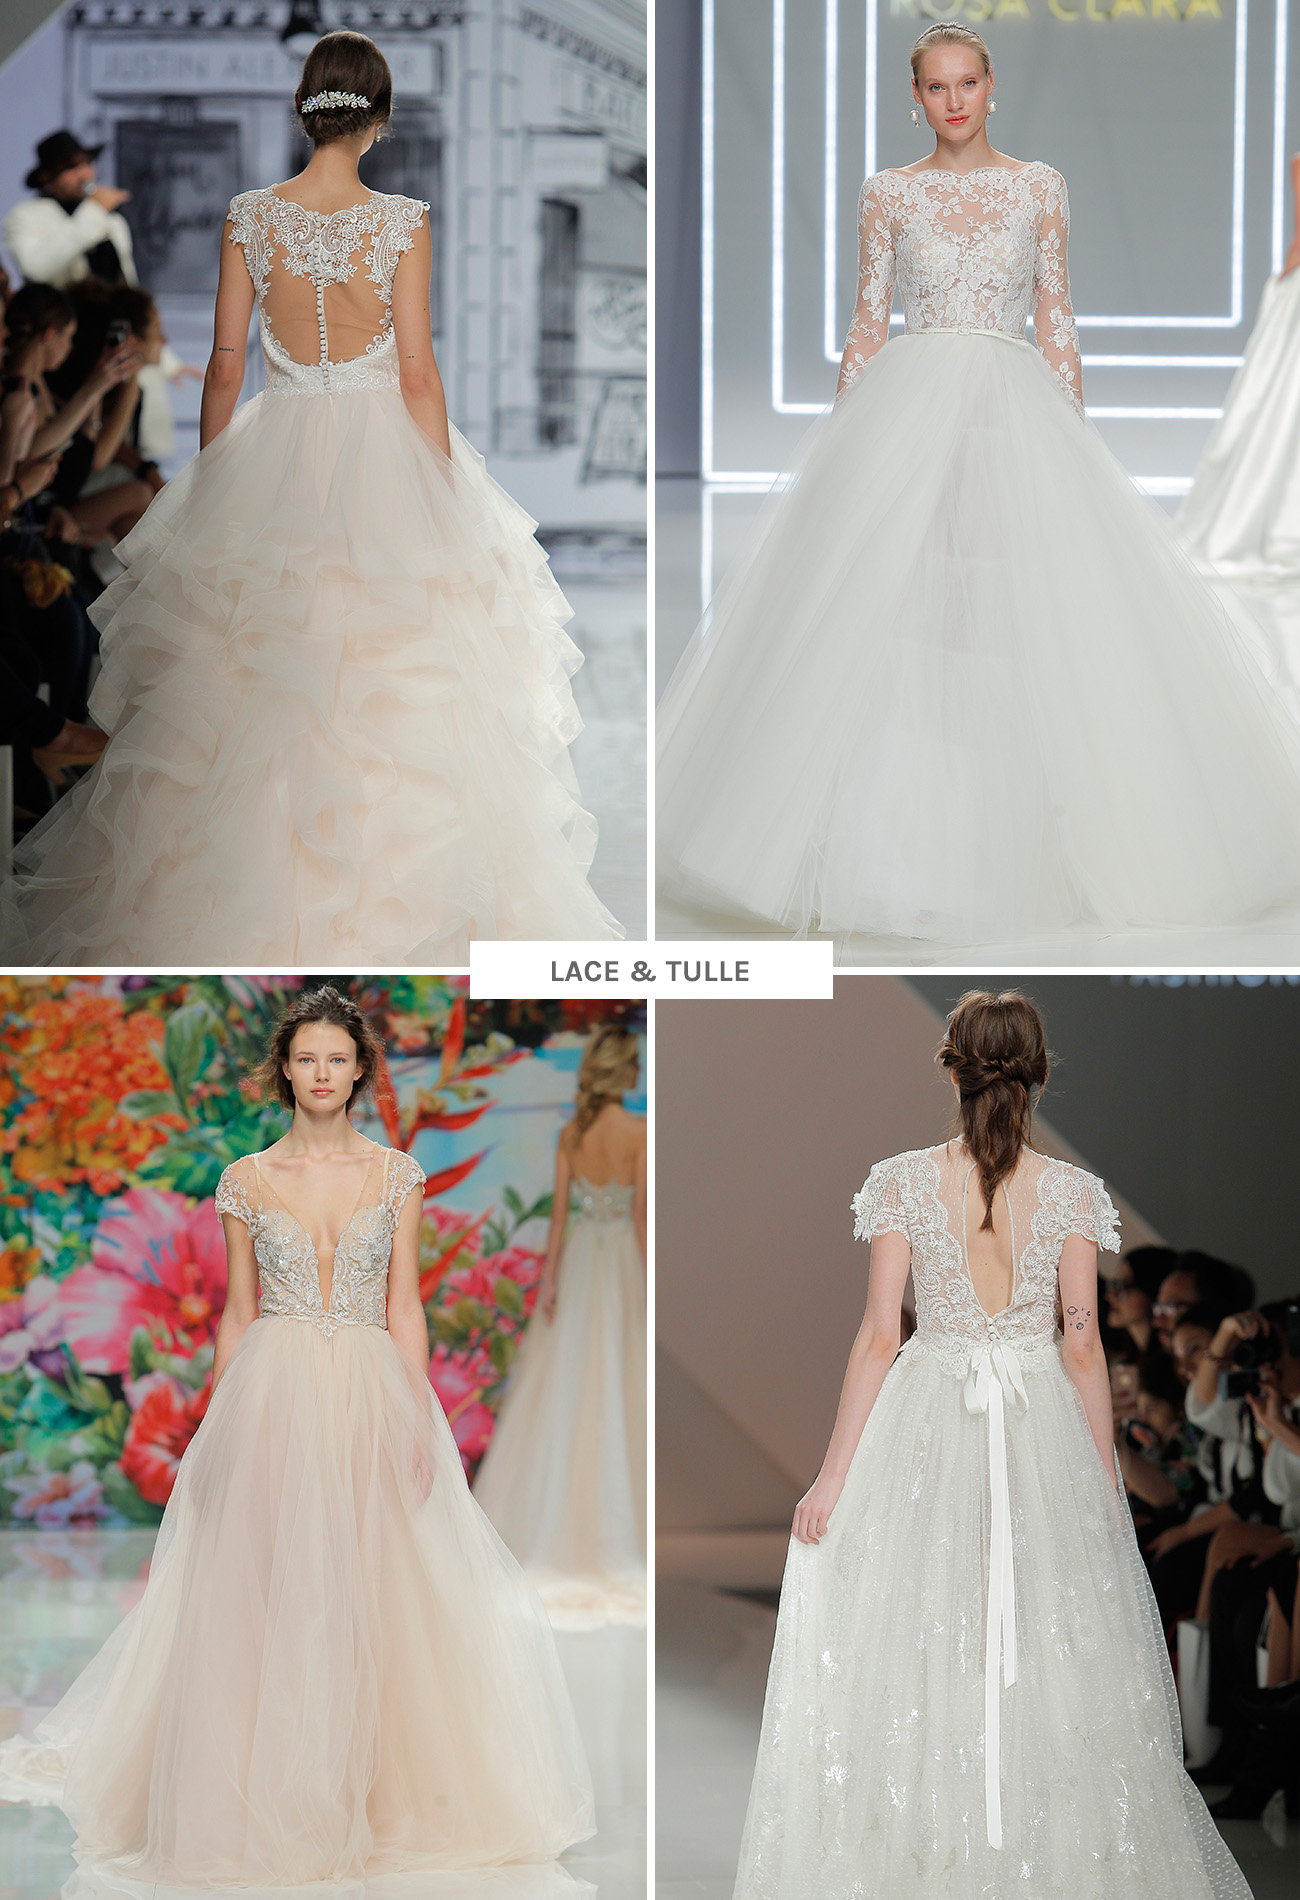 Lace and Tulle Wedding Dresses from Barcelona Bridal Week